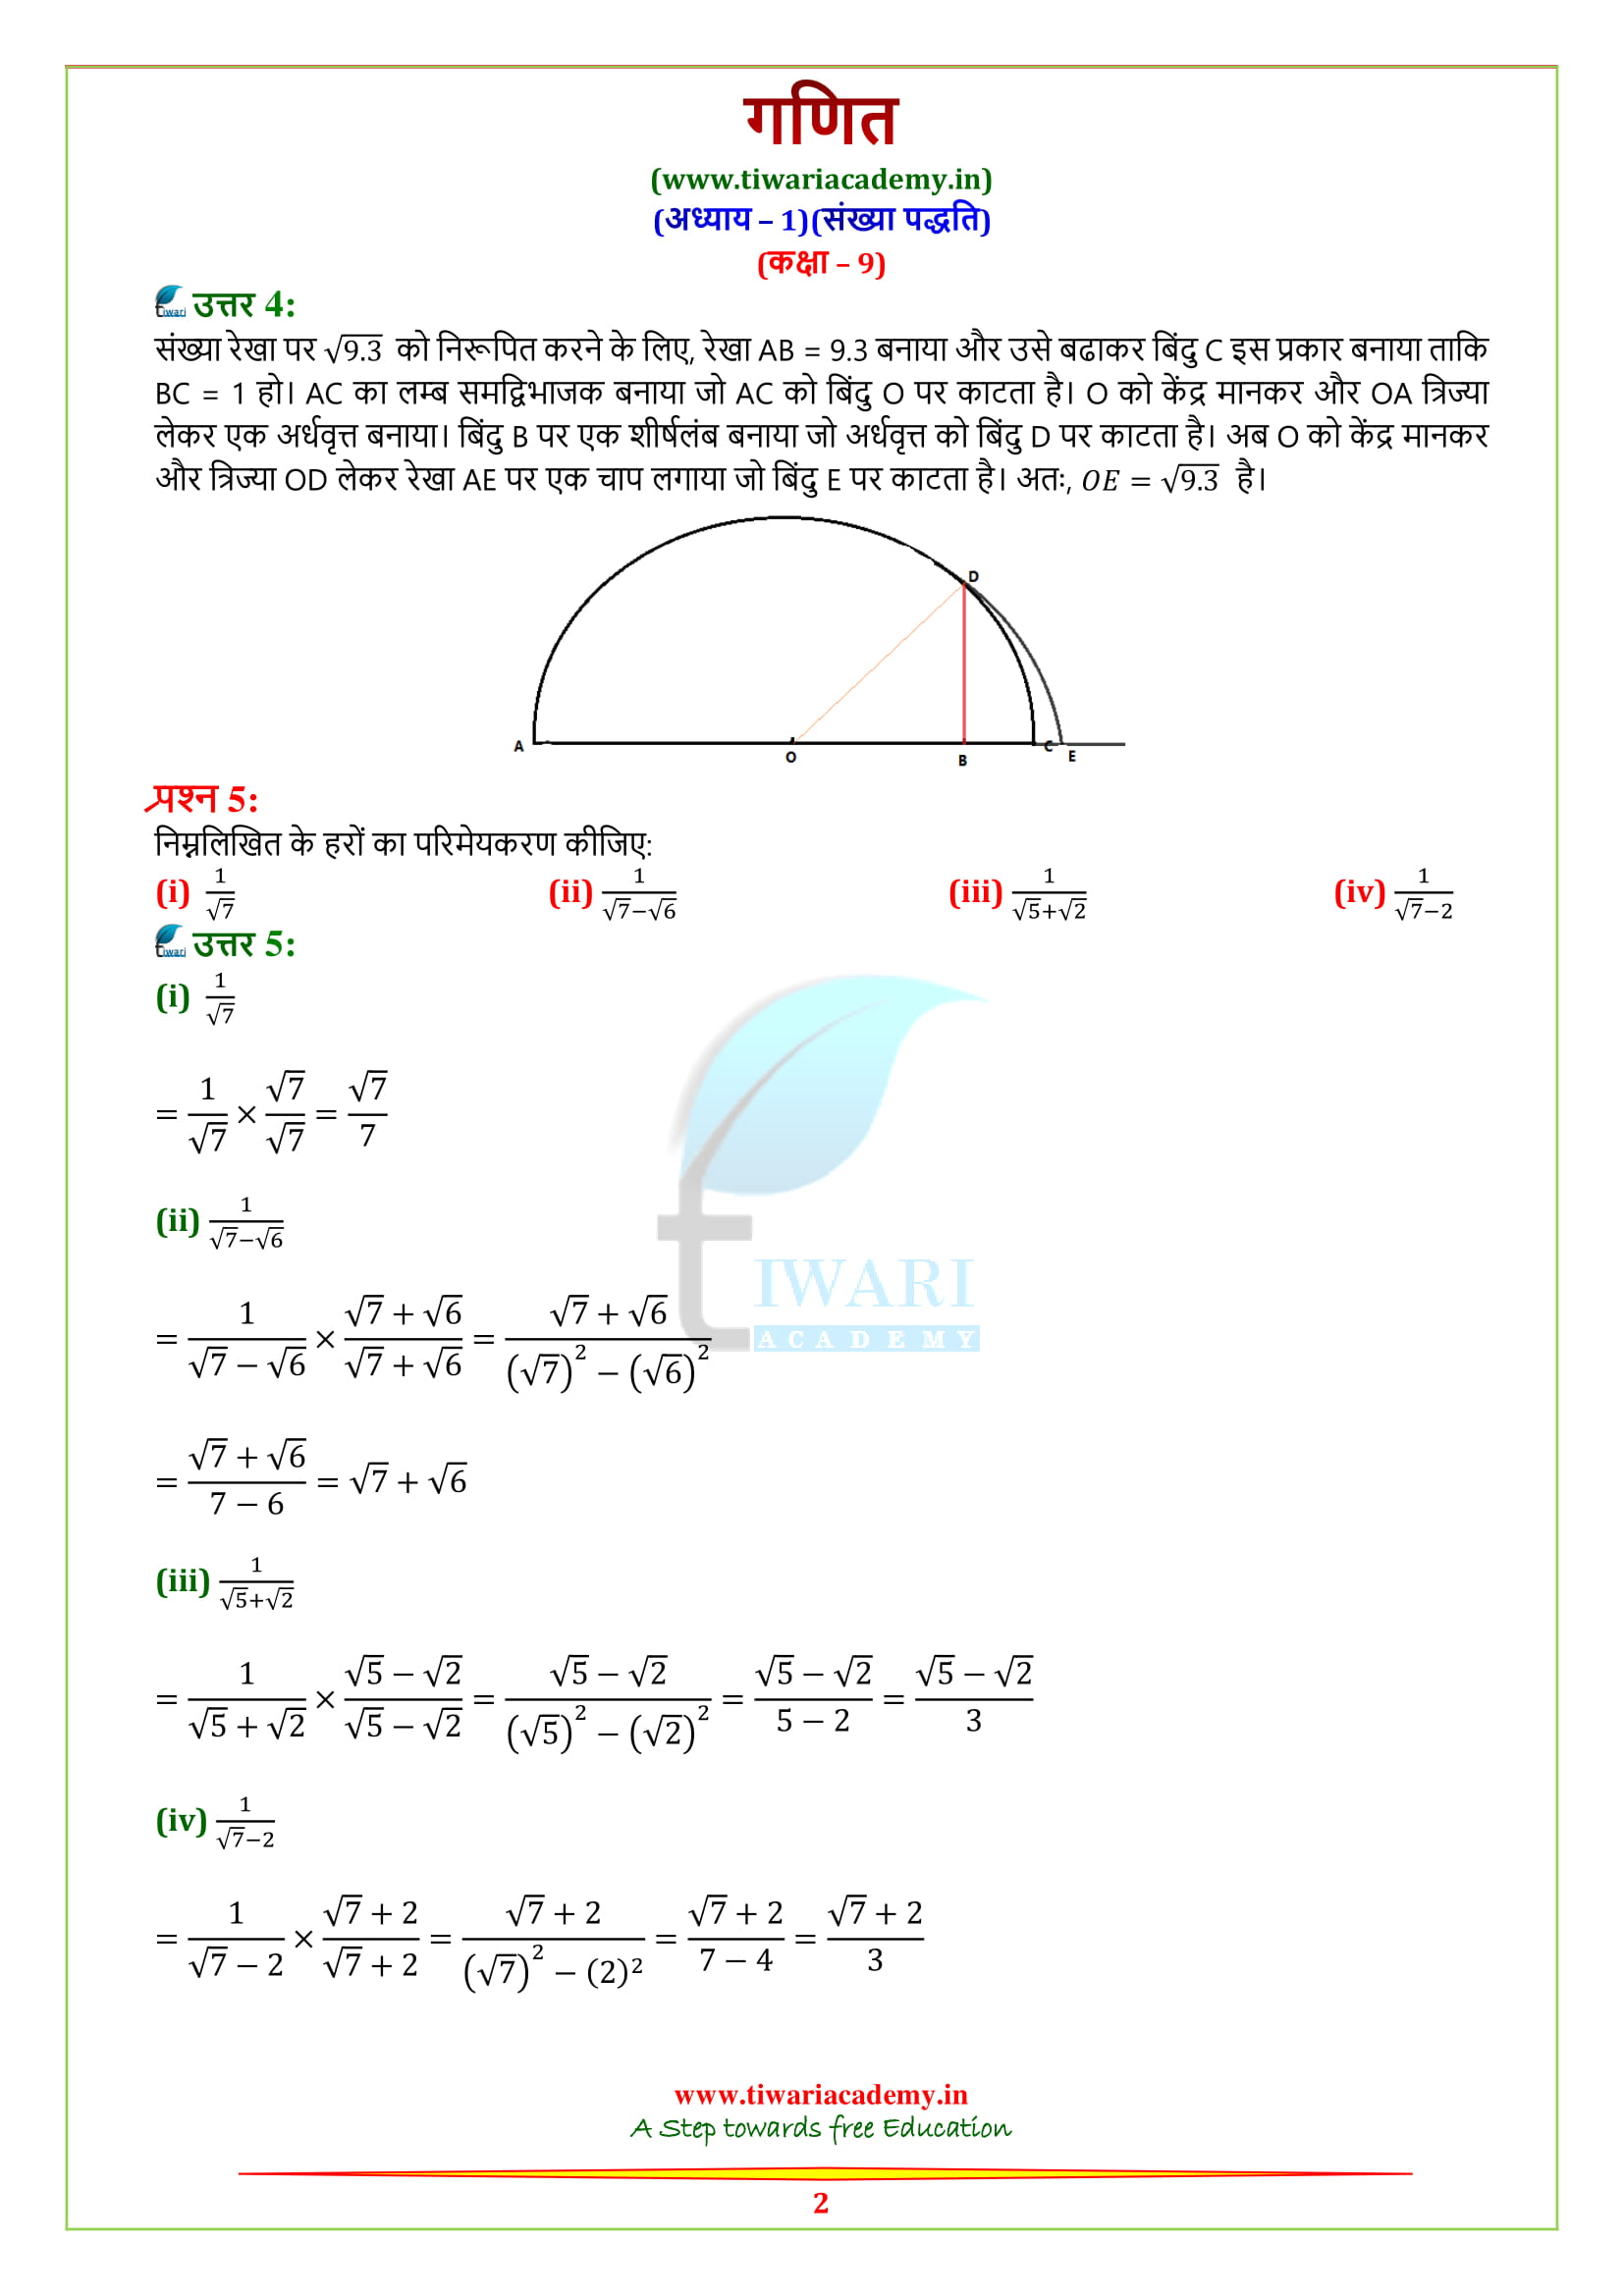 9 Maths Exercise 1.5 solutions updated for mp, up board 2018-19